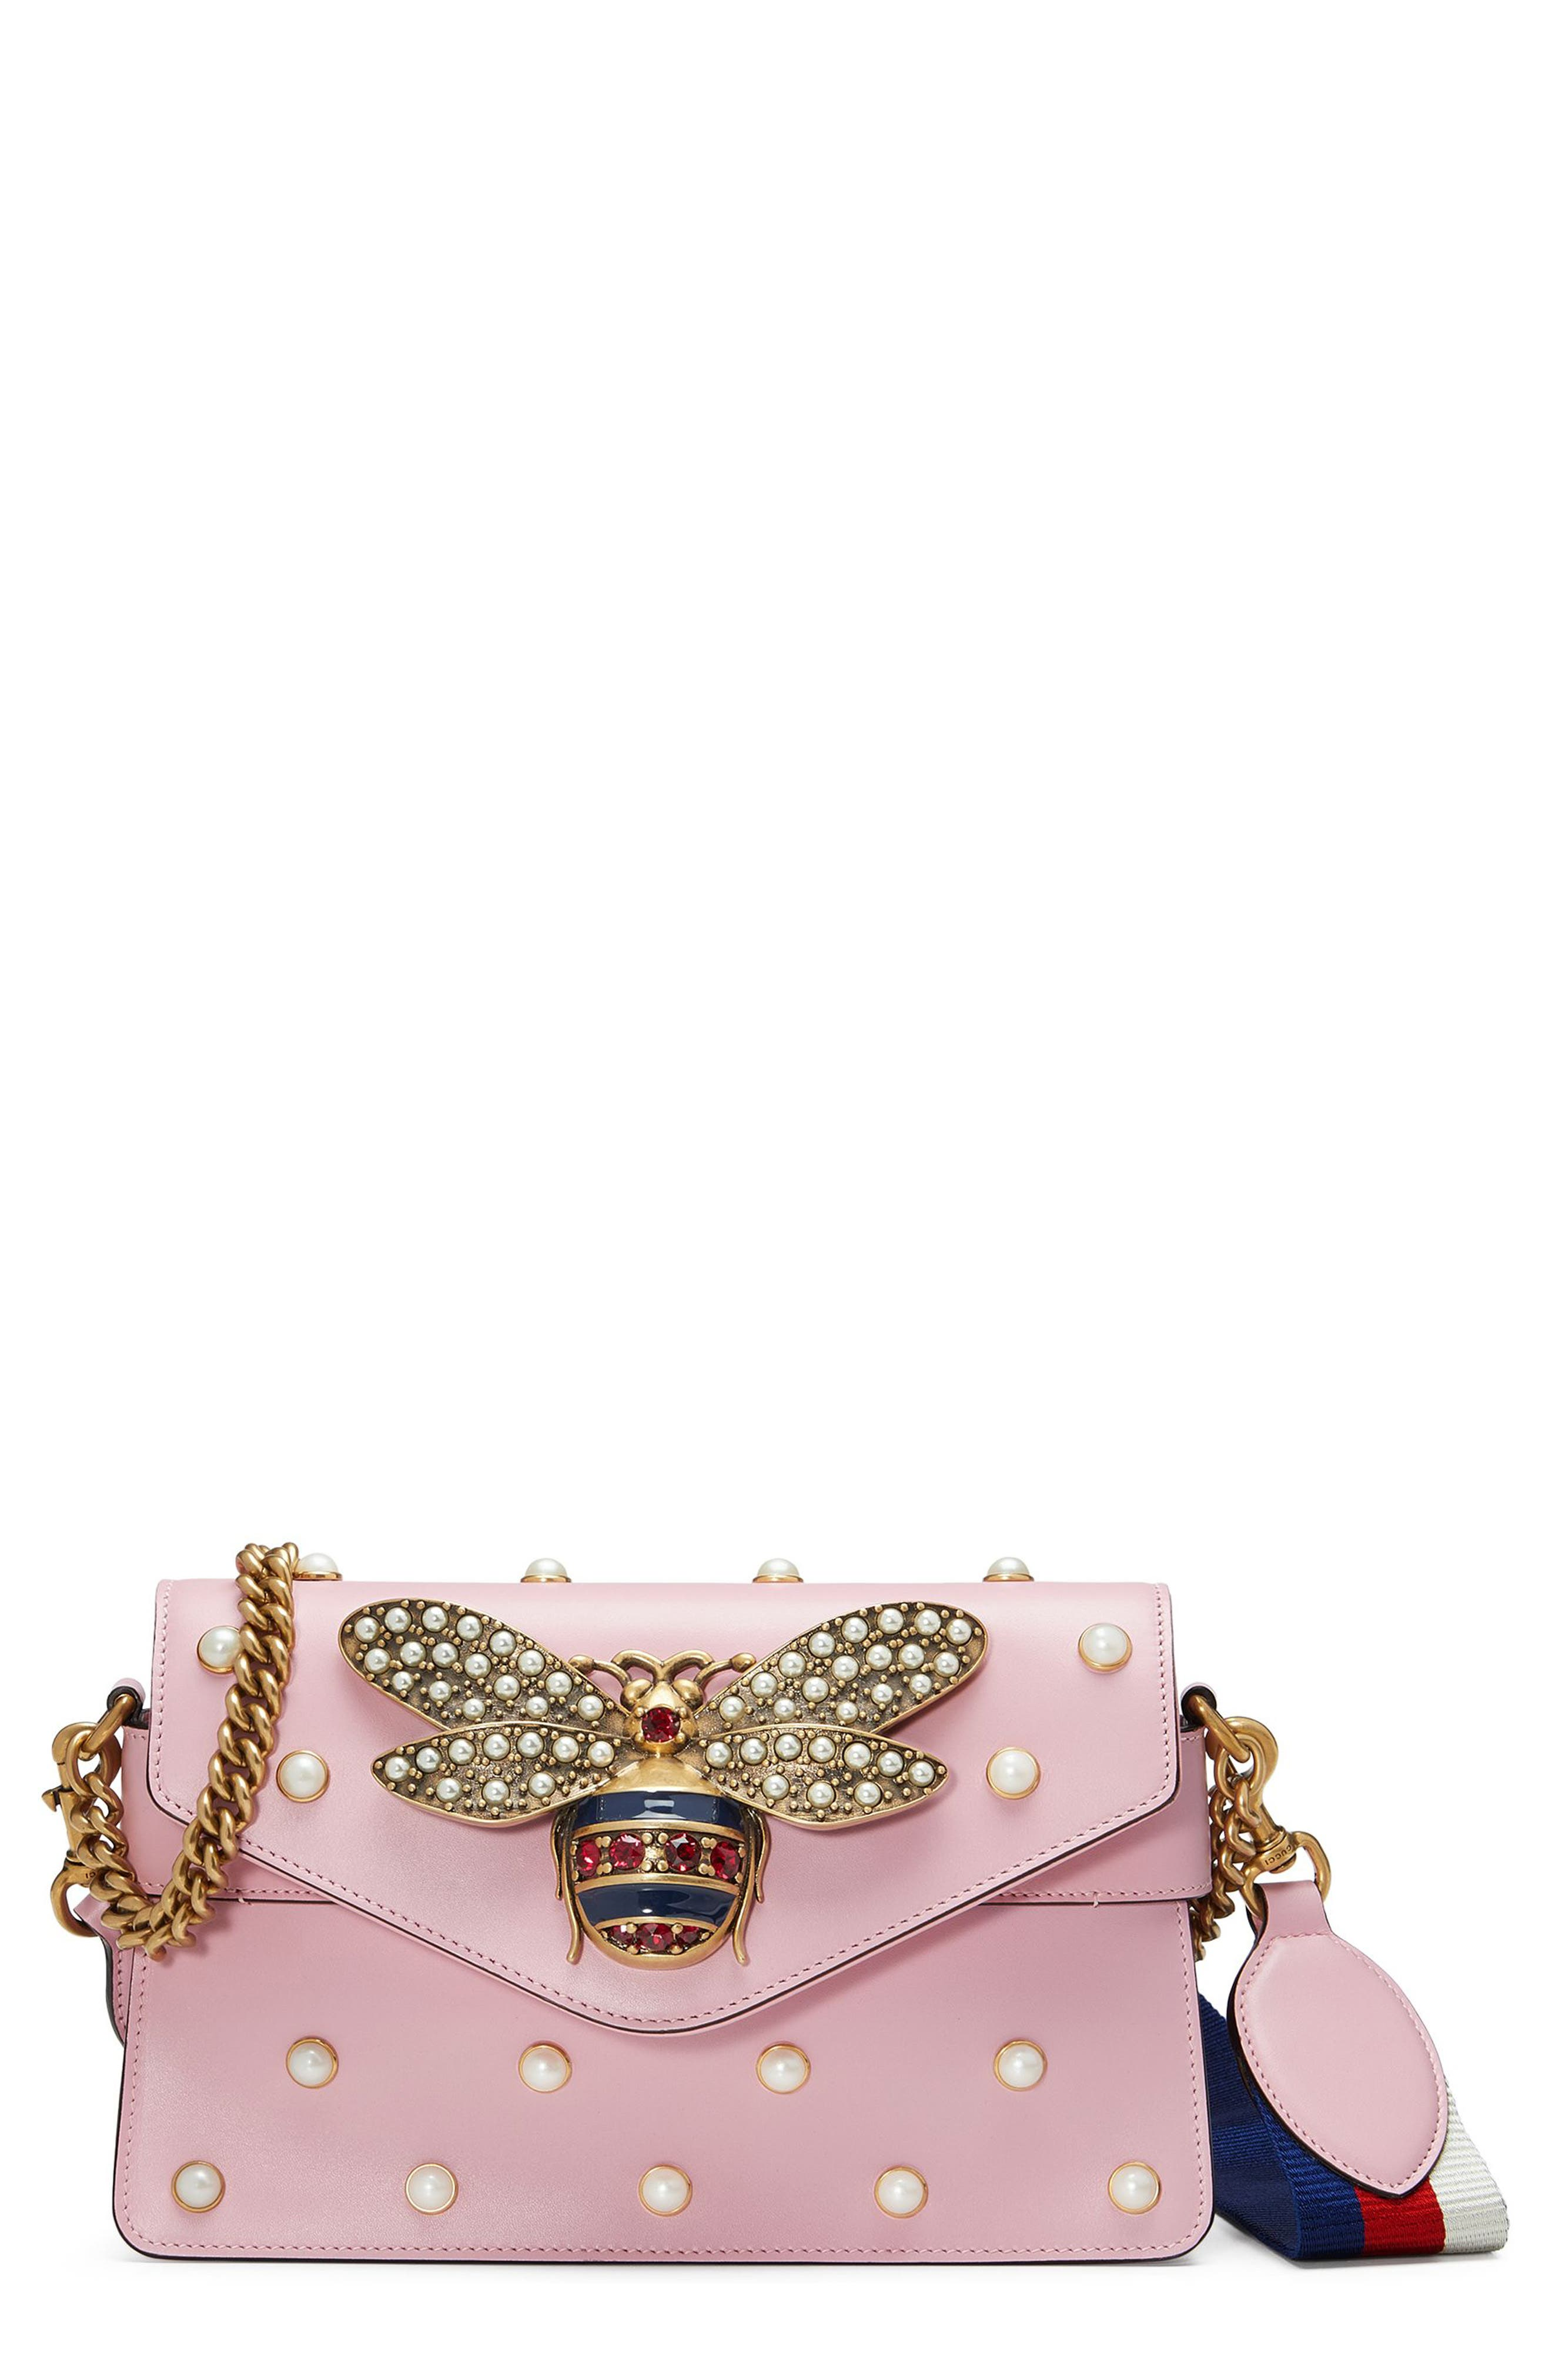 Main Image - Gucci Mini Broadway Leather Shoulder Bag